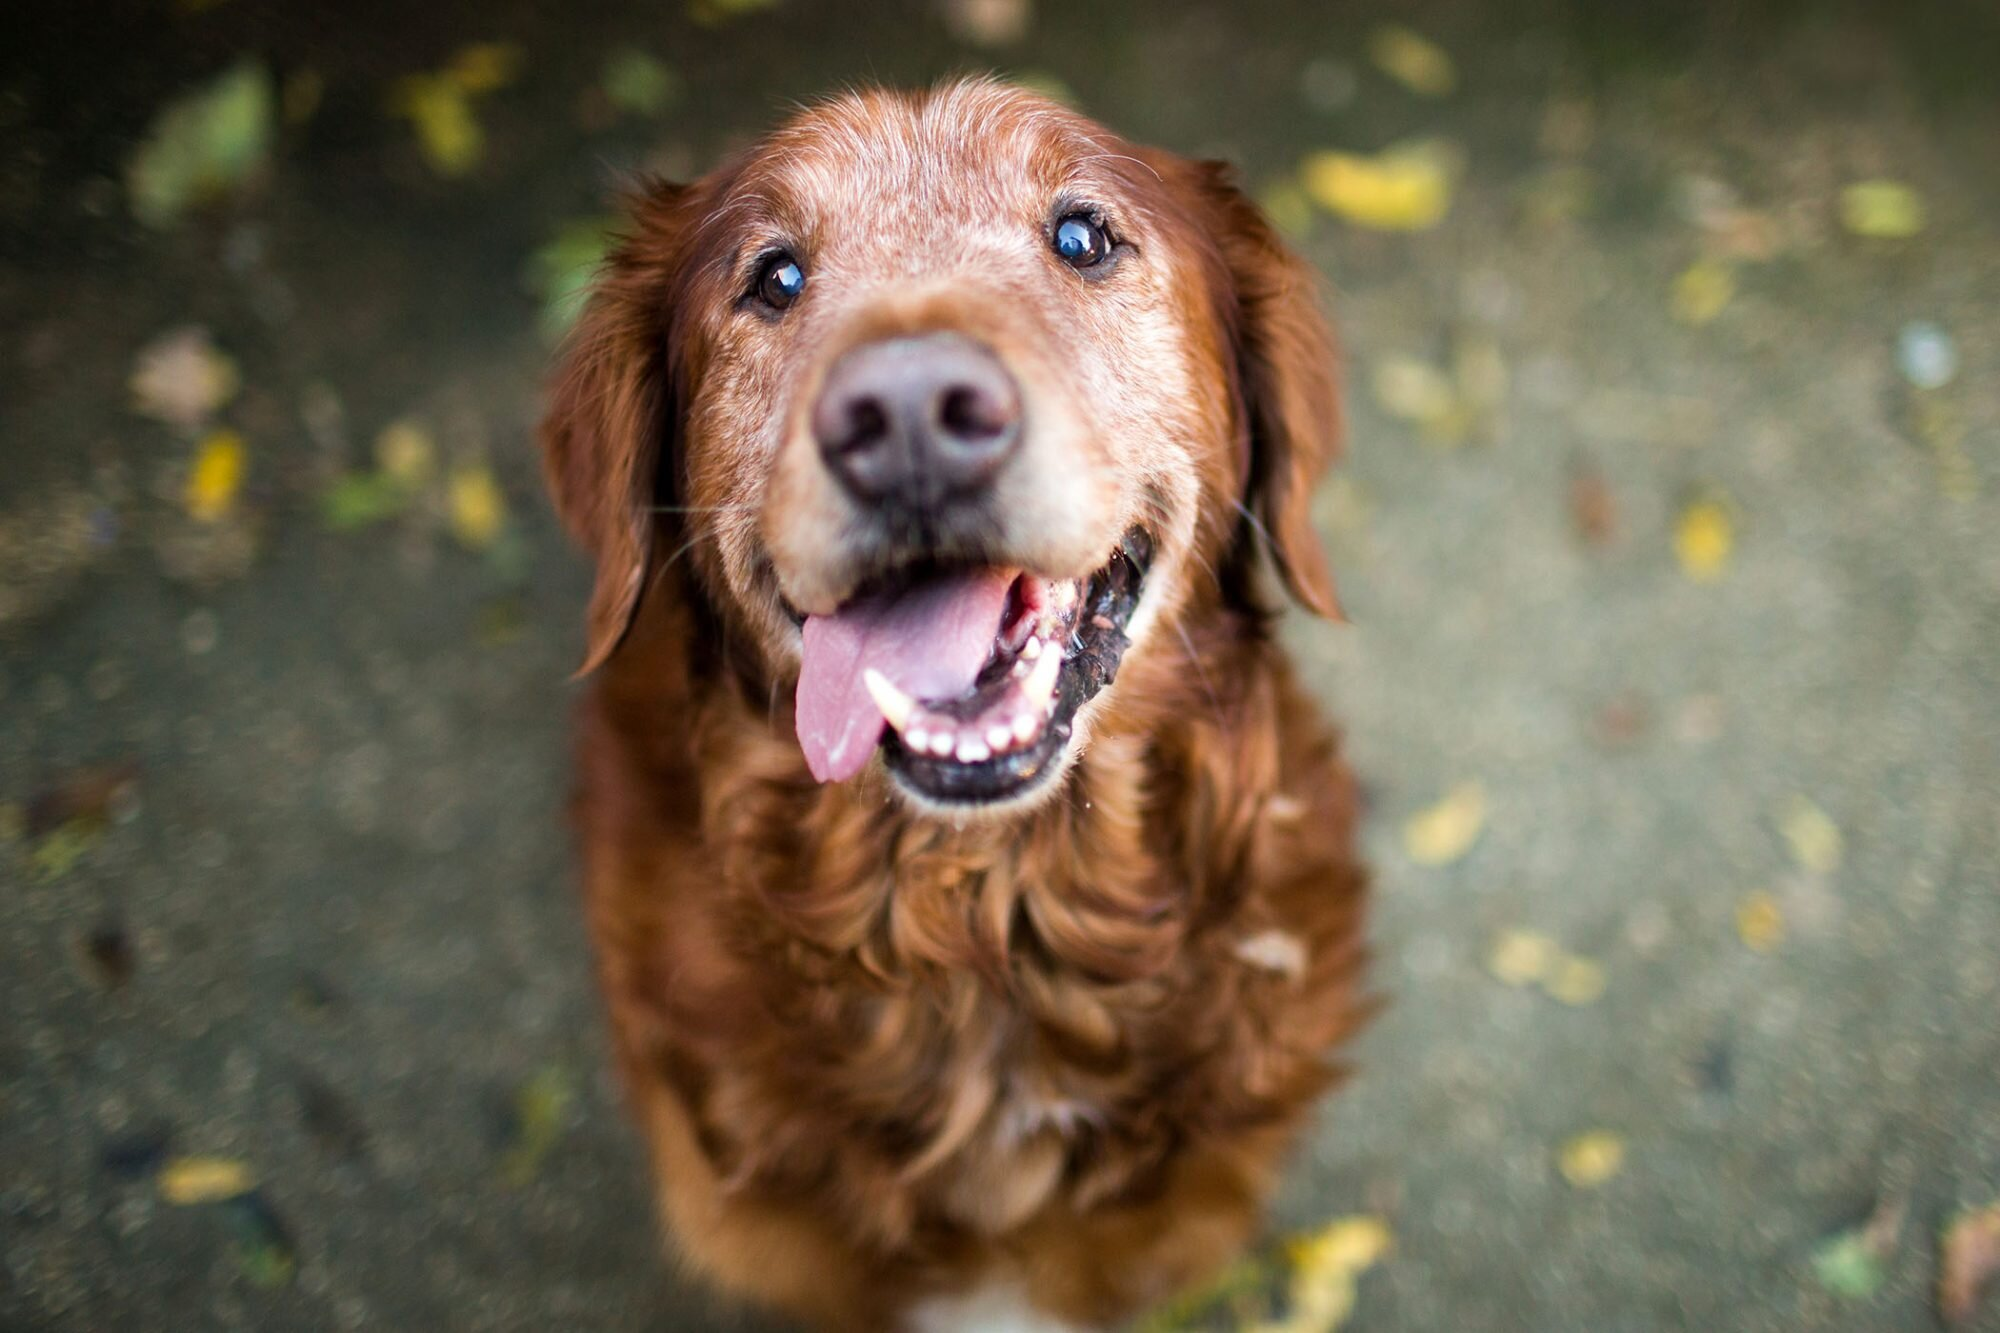 Adopting a Senior Dog: Why Older Dogs Are Awesome | Daily Paws